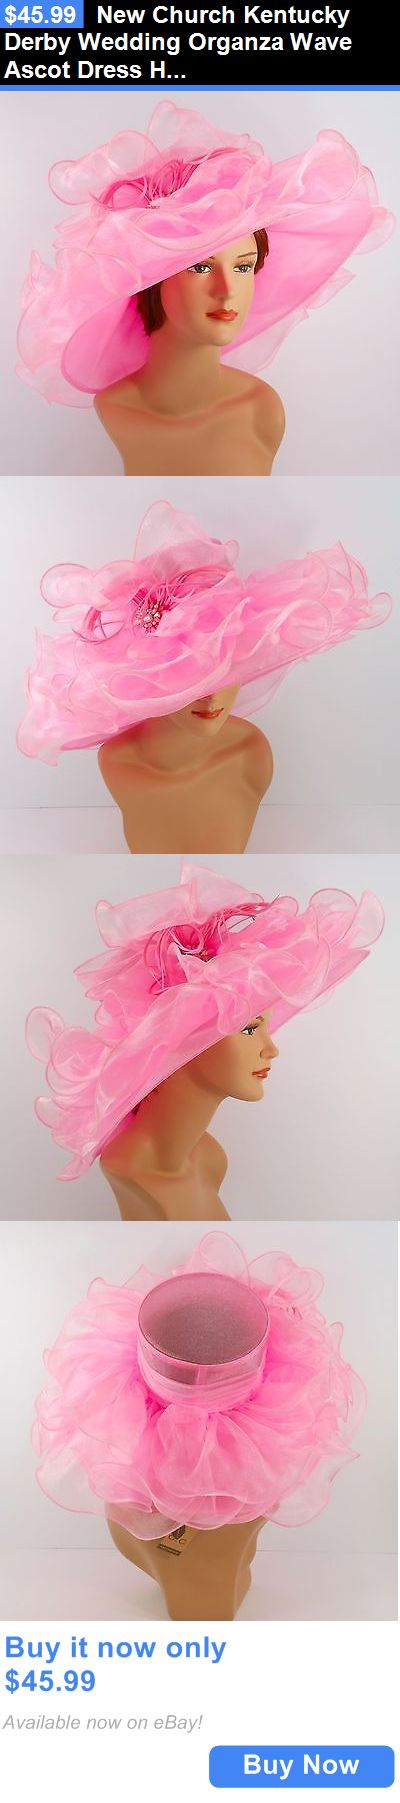 Women Formal Hats: New Church Kentucky Derby Wedding Organza Wave Ascot Dress Hat Dr-05 Pink BUY IT NOW ONLY: $45.99